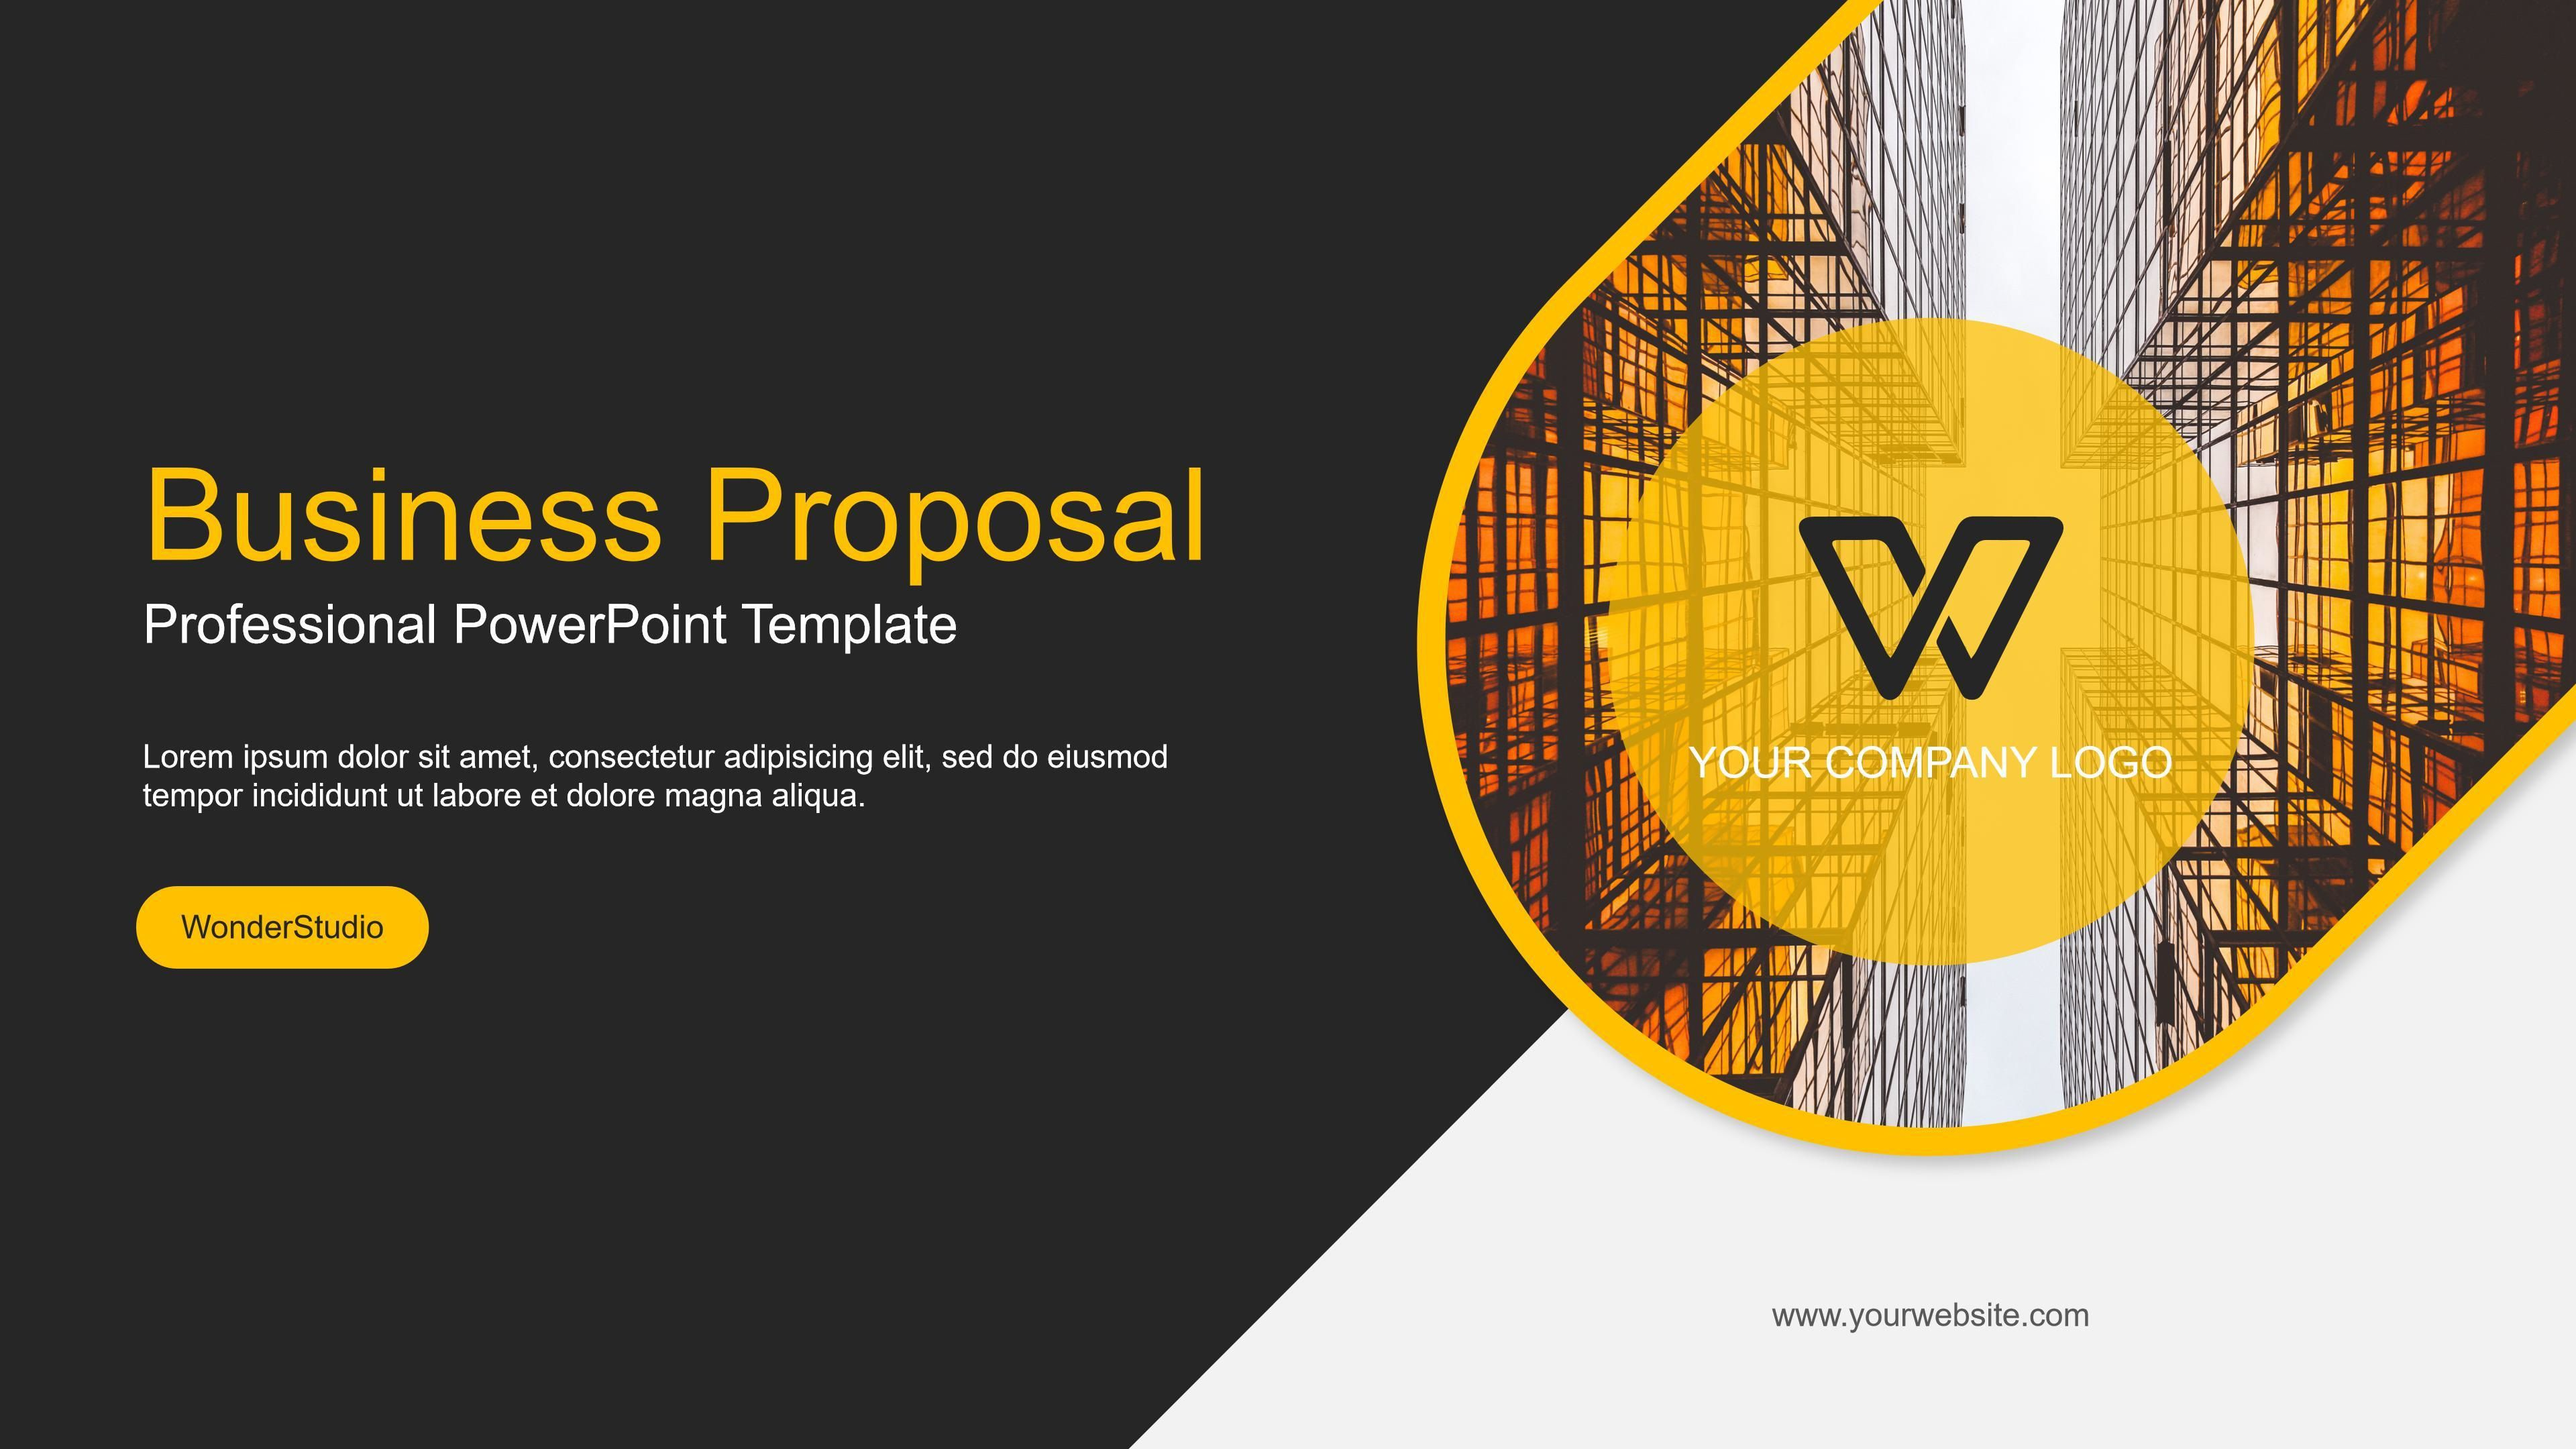 004 Top Professional Ppt Template Free Download Example  For Project Presentation Powerpoint ThesiFull